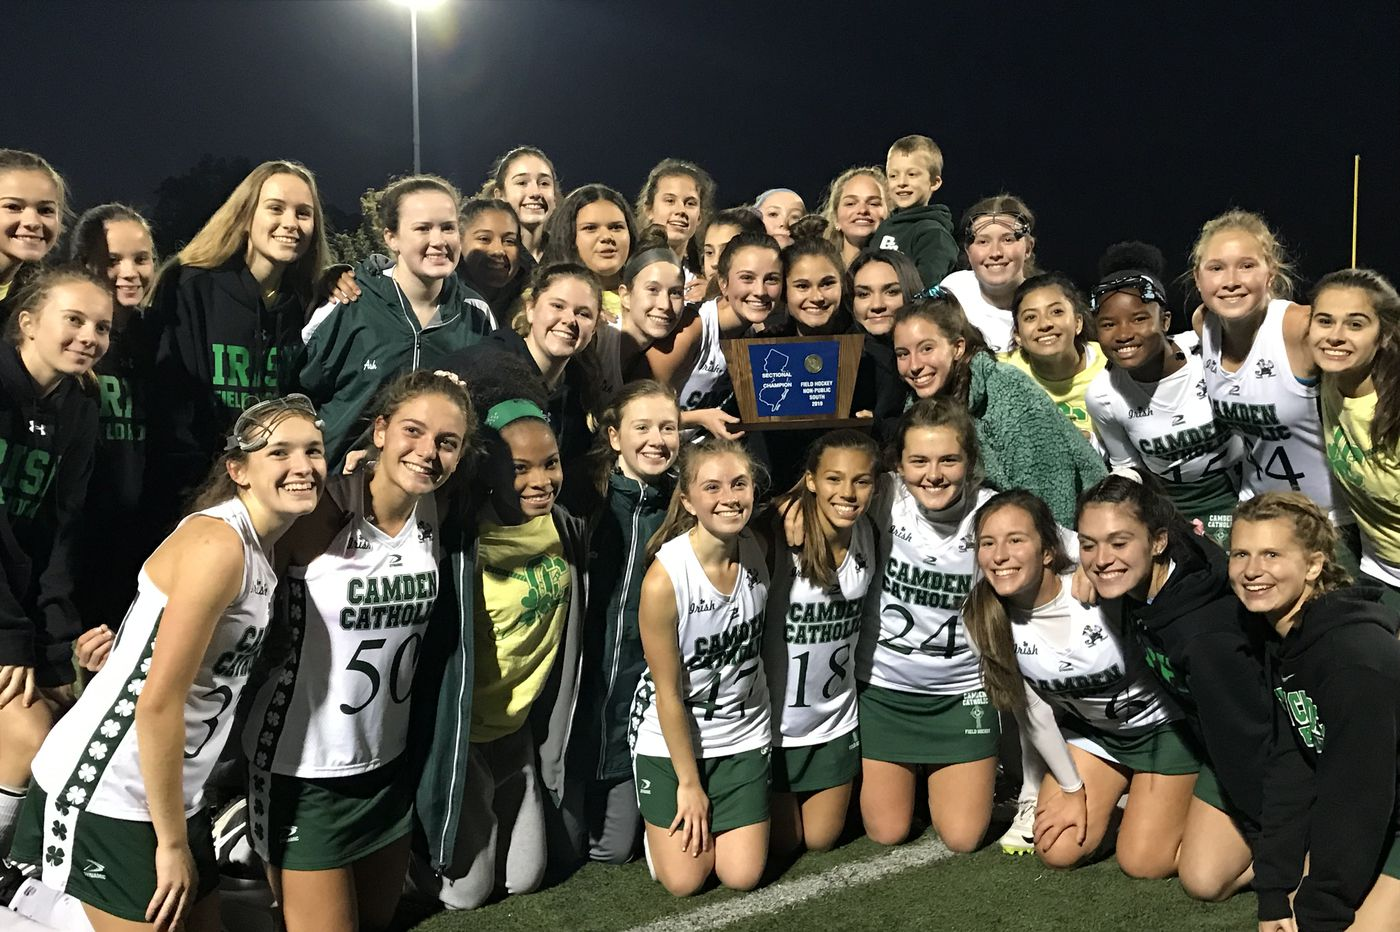 Wednesday's South Jersey roundup: Camden Catholic shuts out Moorestown Friends in South Non-Public field hockey final